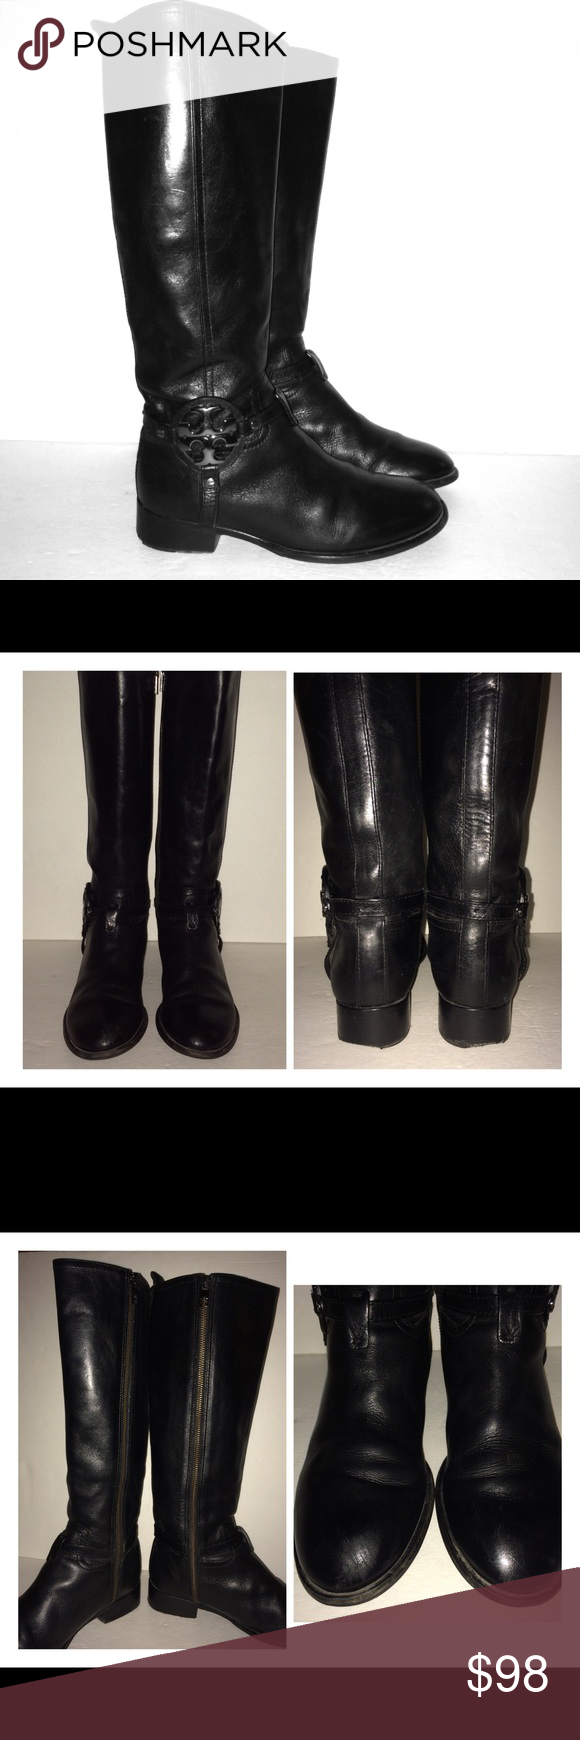 Tory Burch Tall Black Leather Harness Boots Tory Burch Tall Black Leather Boots. Gun Metal/Silver Harness Medallion. Women's Size 7.5M. Boots Have Scuffs On Toes & Wear On Backs Of Heels From Regular Use. Clean Condition Inside & Out. Made In Brazil. Full Length Zipper For Easy On & Off. Thanks For Looking. Check My Closet For Other Great Items!!!!! Tory Burch Shoes Combat & Moto Boots